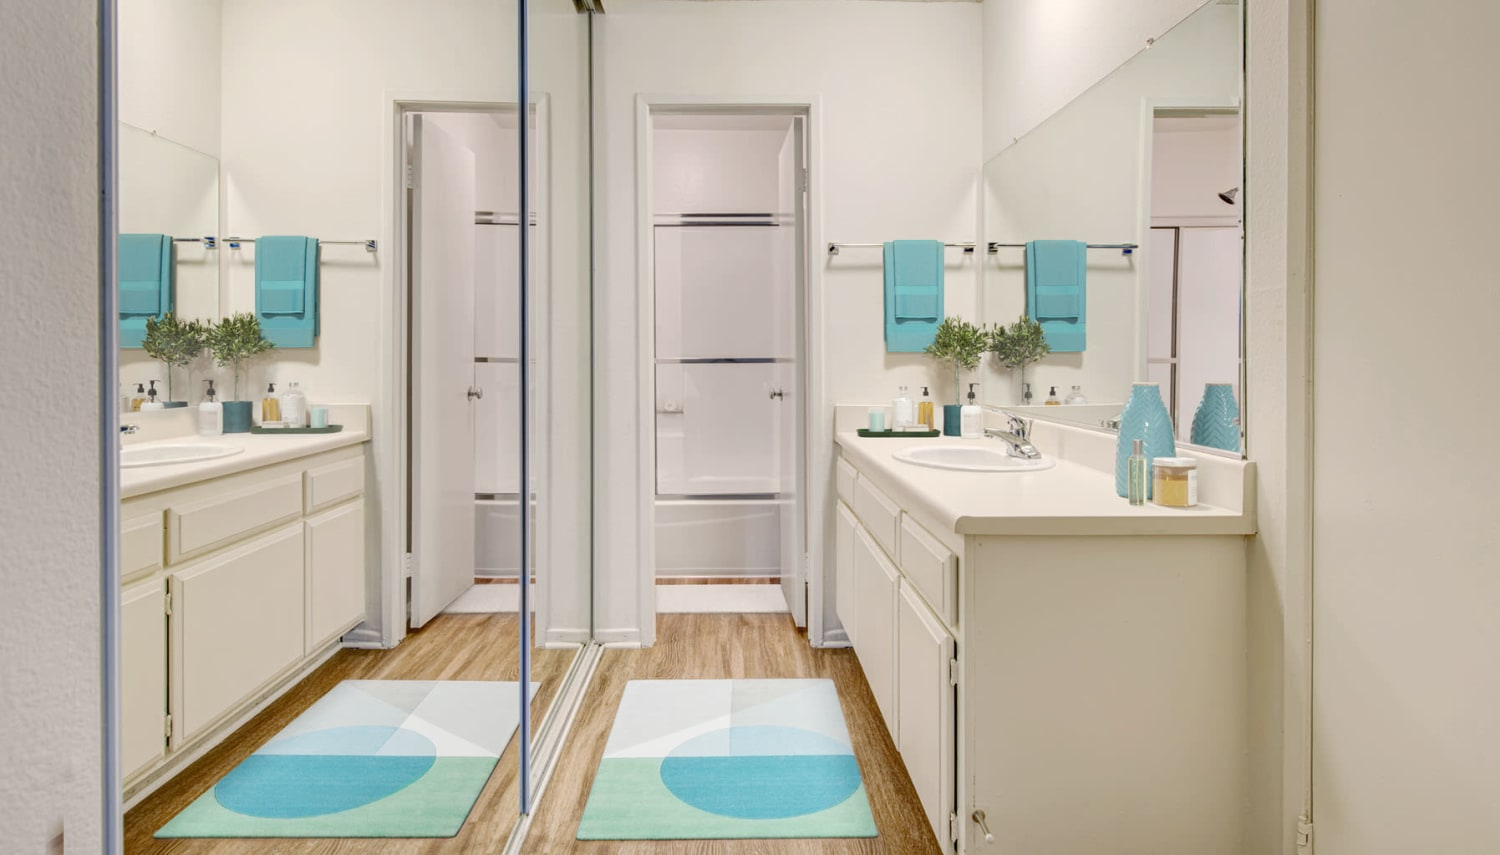 Bathroom with mirrored closet doors in a model apartment at Village Pointe in Northridge, California